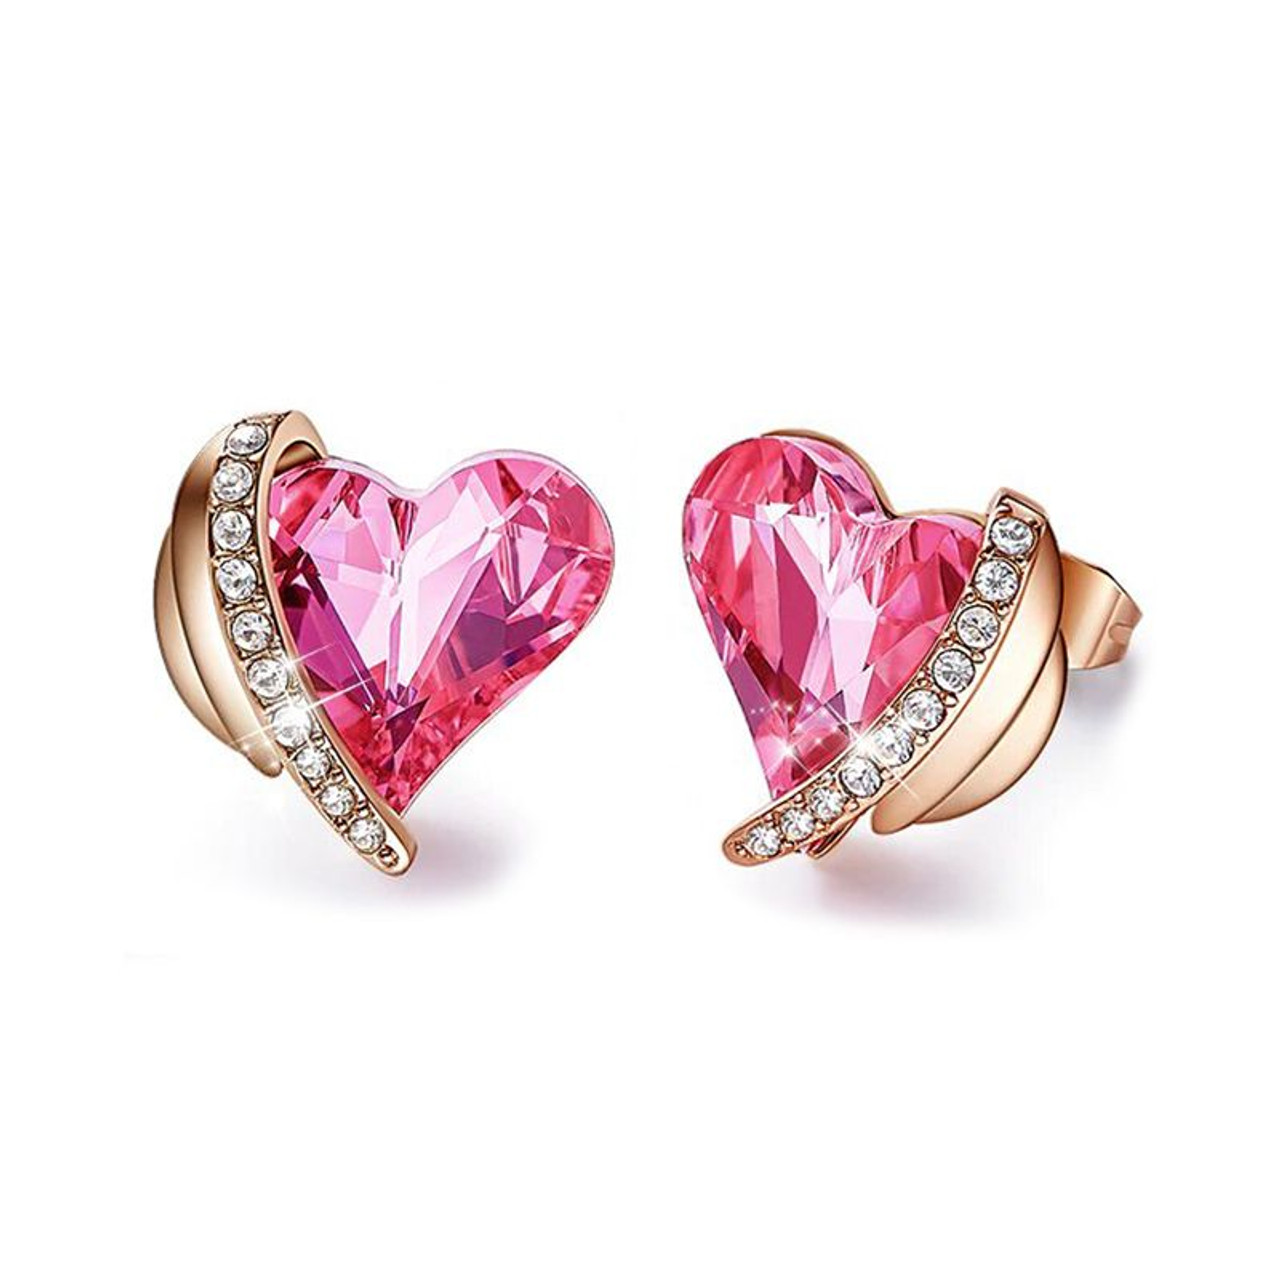 Pink Topaz Pave Heart Stud Earrings Made with Swarovski Crystals